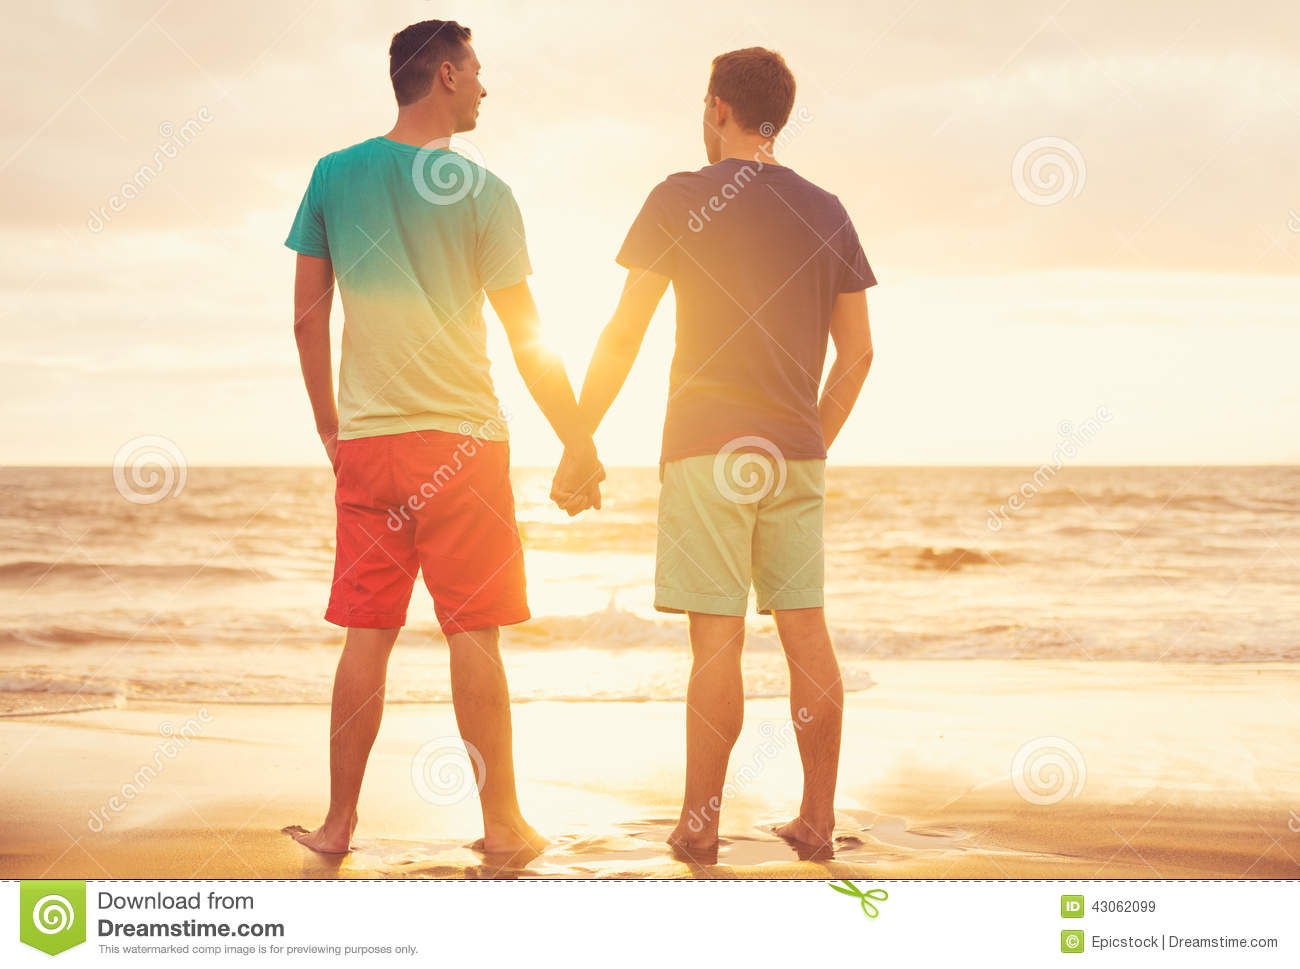 """single gay men in sunset In a merciless gay community where you're labeled """"over the hill"""" after the age of 30 (and even younger in some circles), it can be extremely challenging for those single gay men in midlife and beyond who are serious about dating to find quality partners who are also seeking a relationship."""